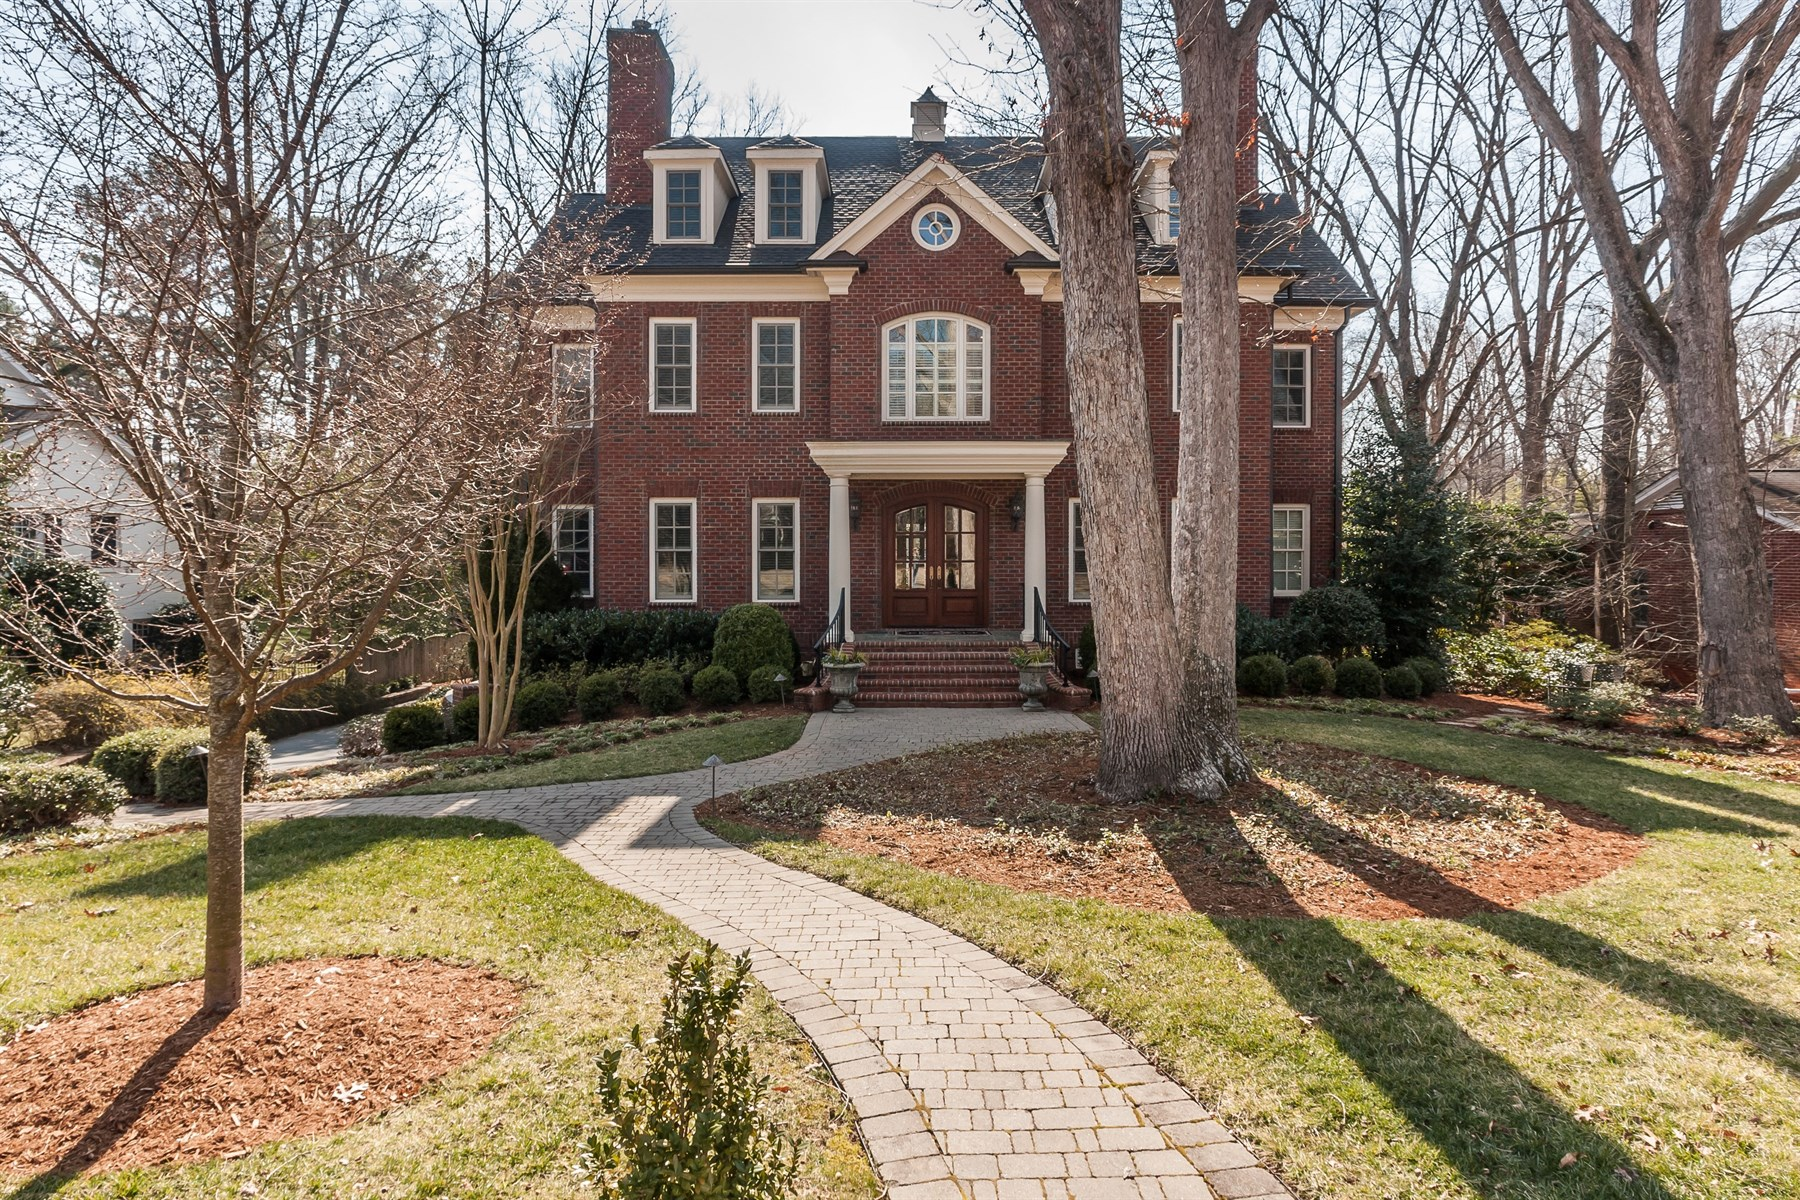 Casa Unifamiliar por un Venta en Exquisite Two Story Brick Traditional 713 Yarmouth Road Raleigh, Carolina Del Norte 27607 Estados Unidos